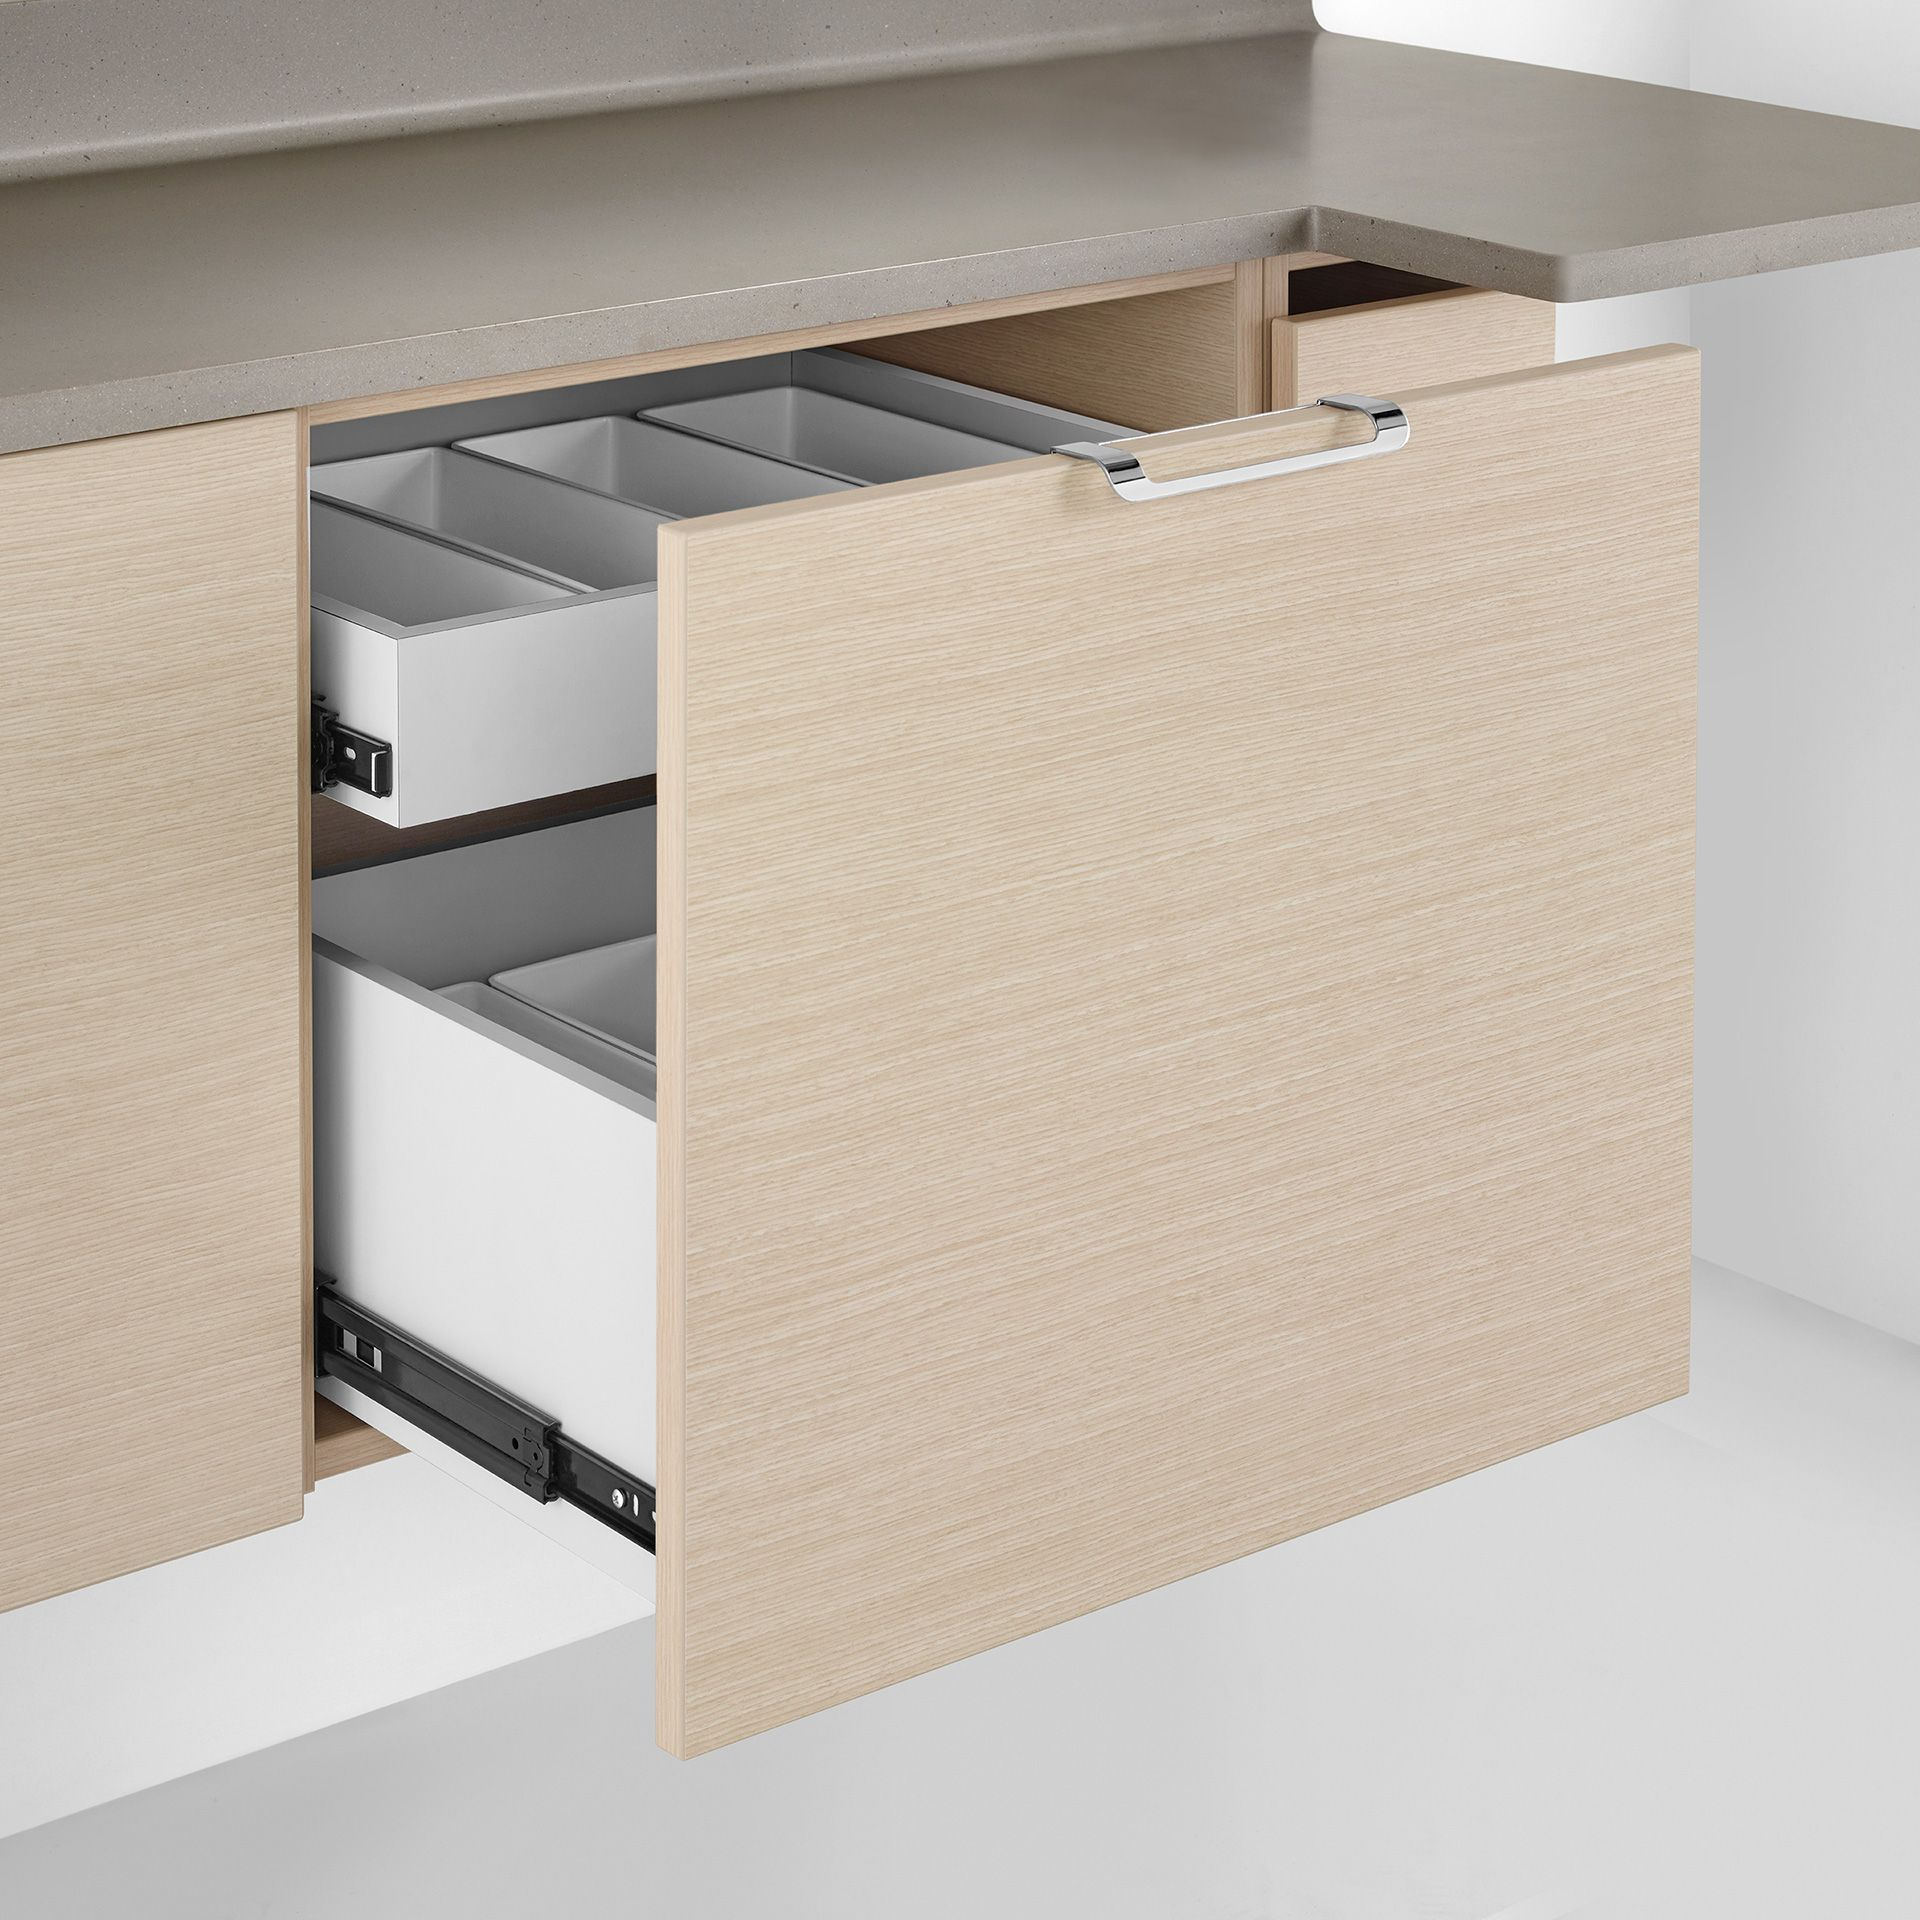 CABINET RANK: The seemingly limitless versatility of Herman Miller's new Mora line